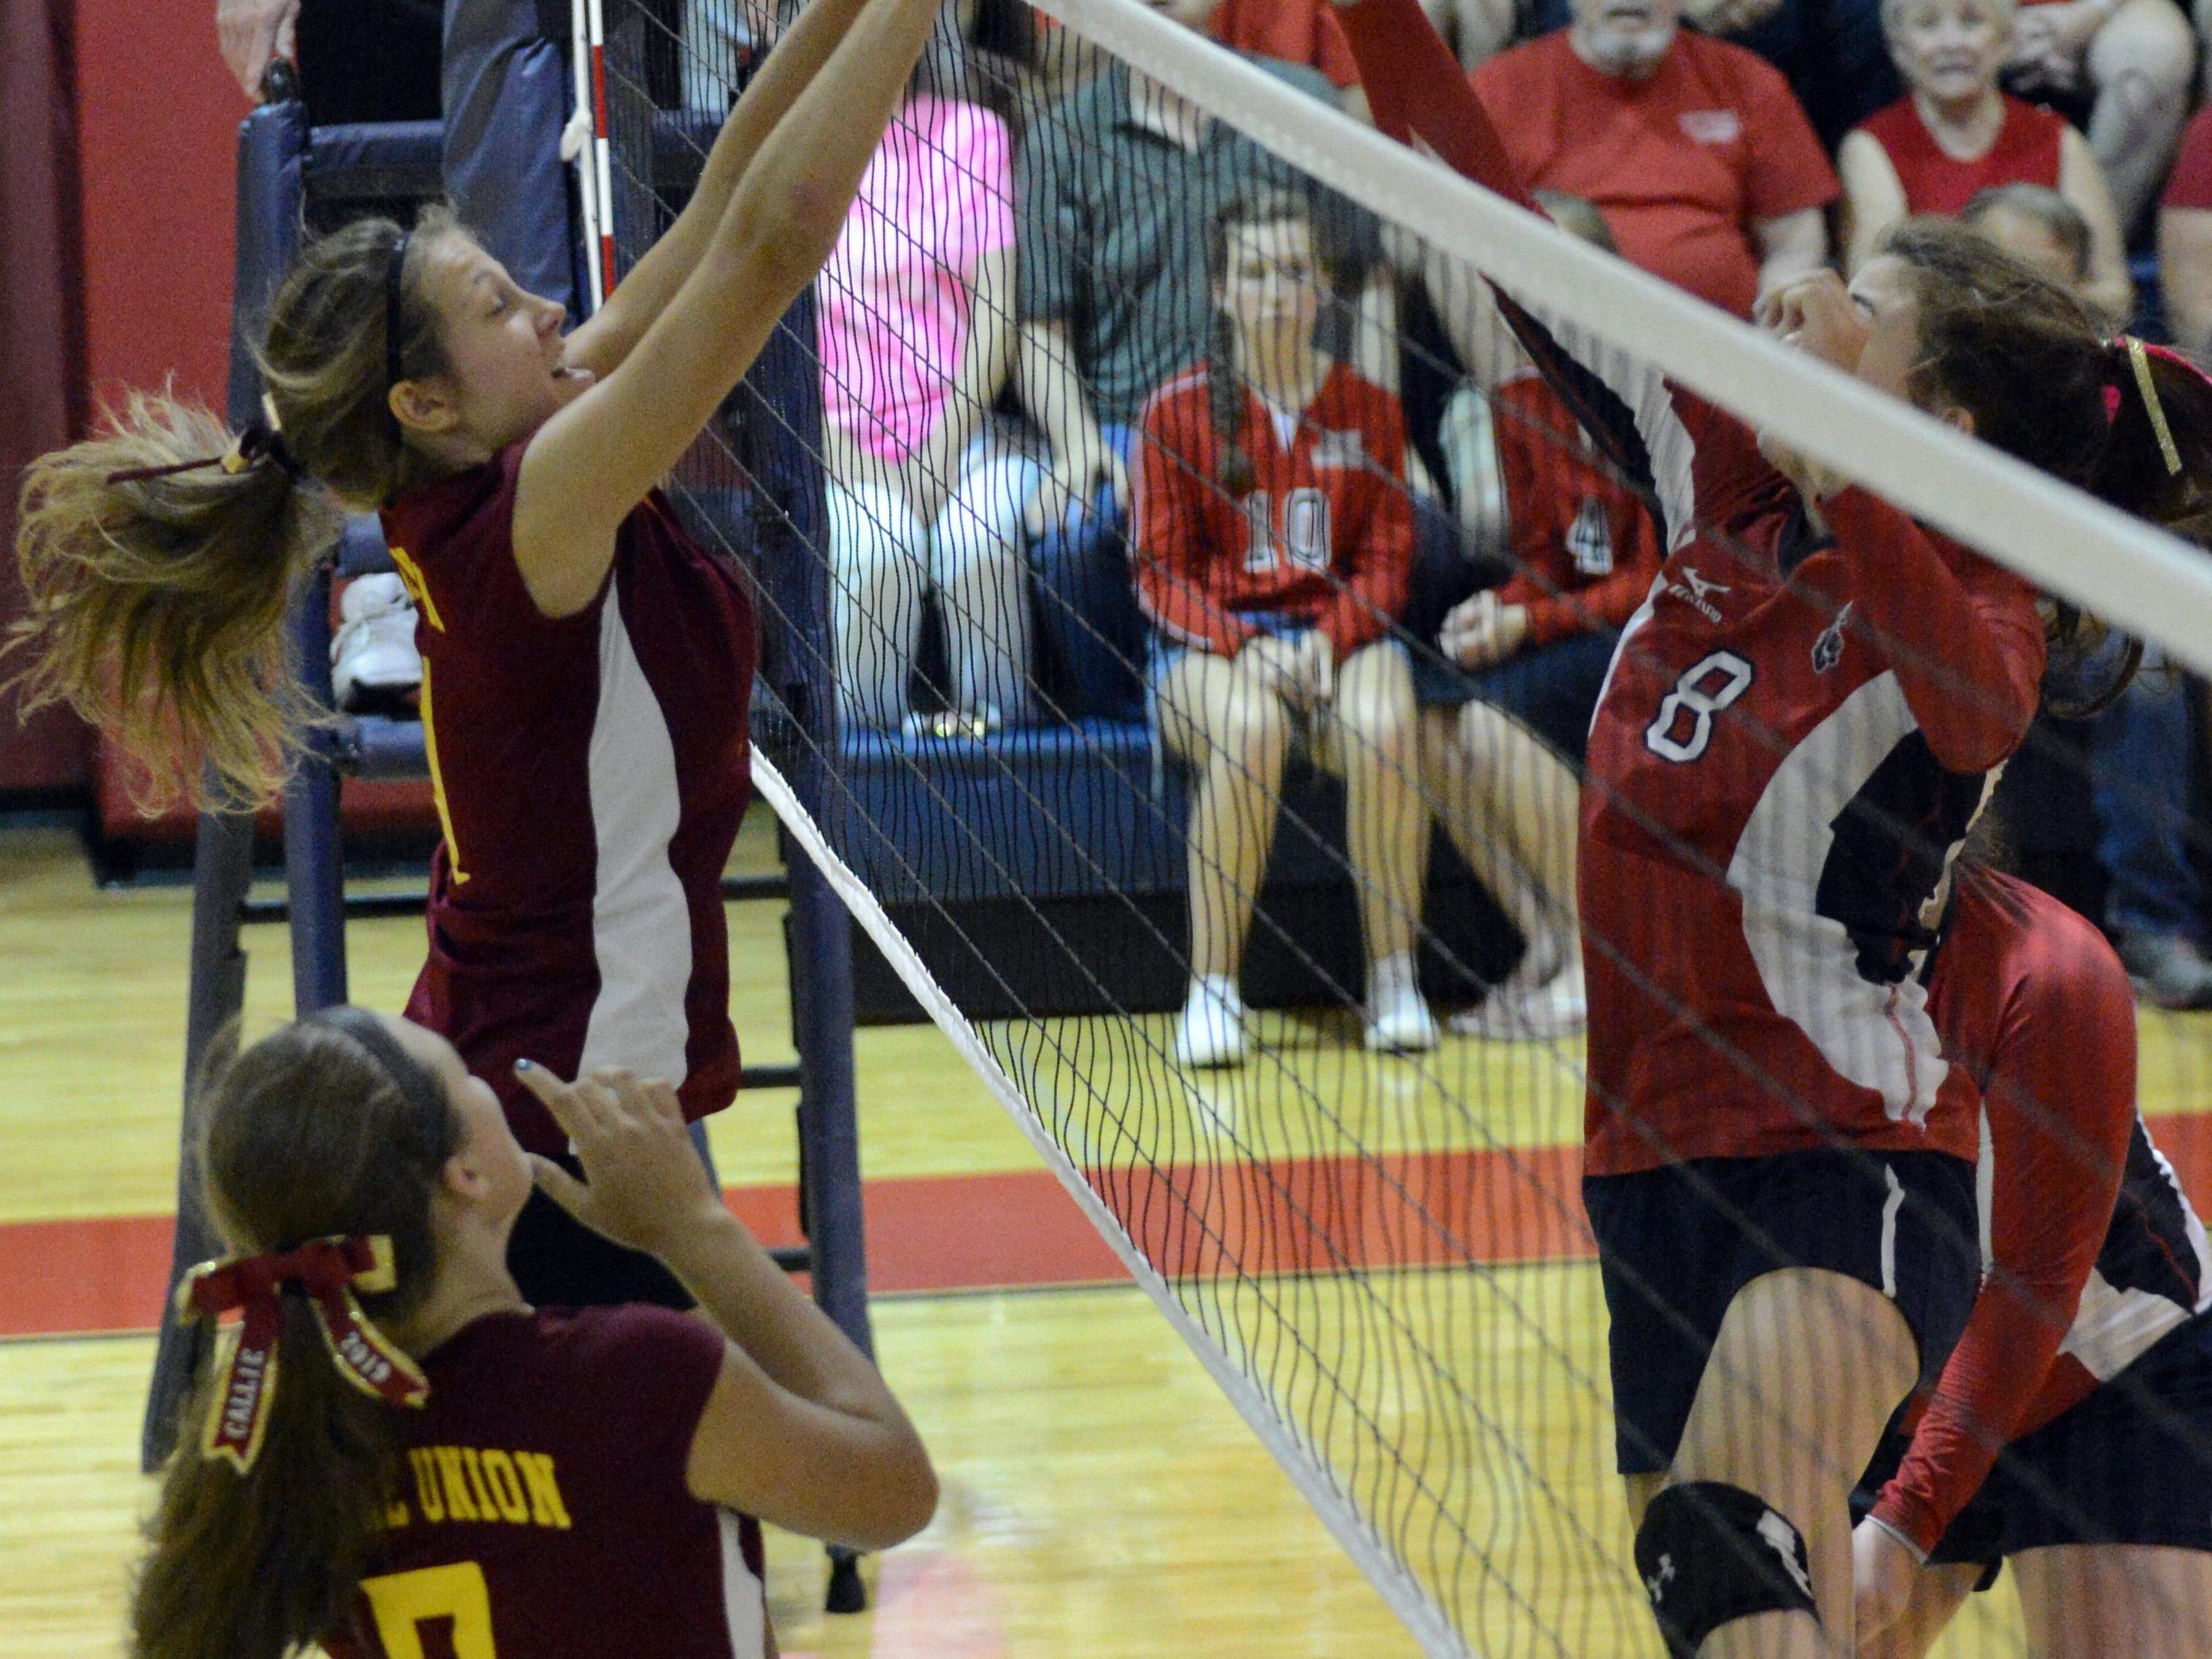 Berne Union's Lauren Shepherd, left, tips the ball over the net against Fairfield Christian's Blaire Barr on Thursday night at Fairfield Christian Academy in Lancaster. The Rockets won the match three games to two.